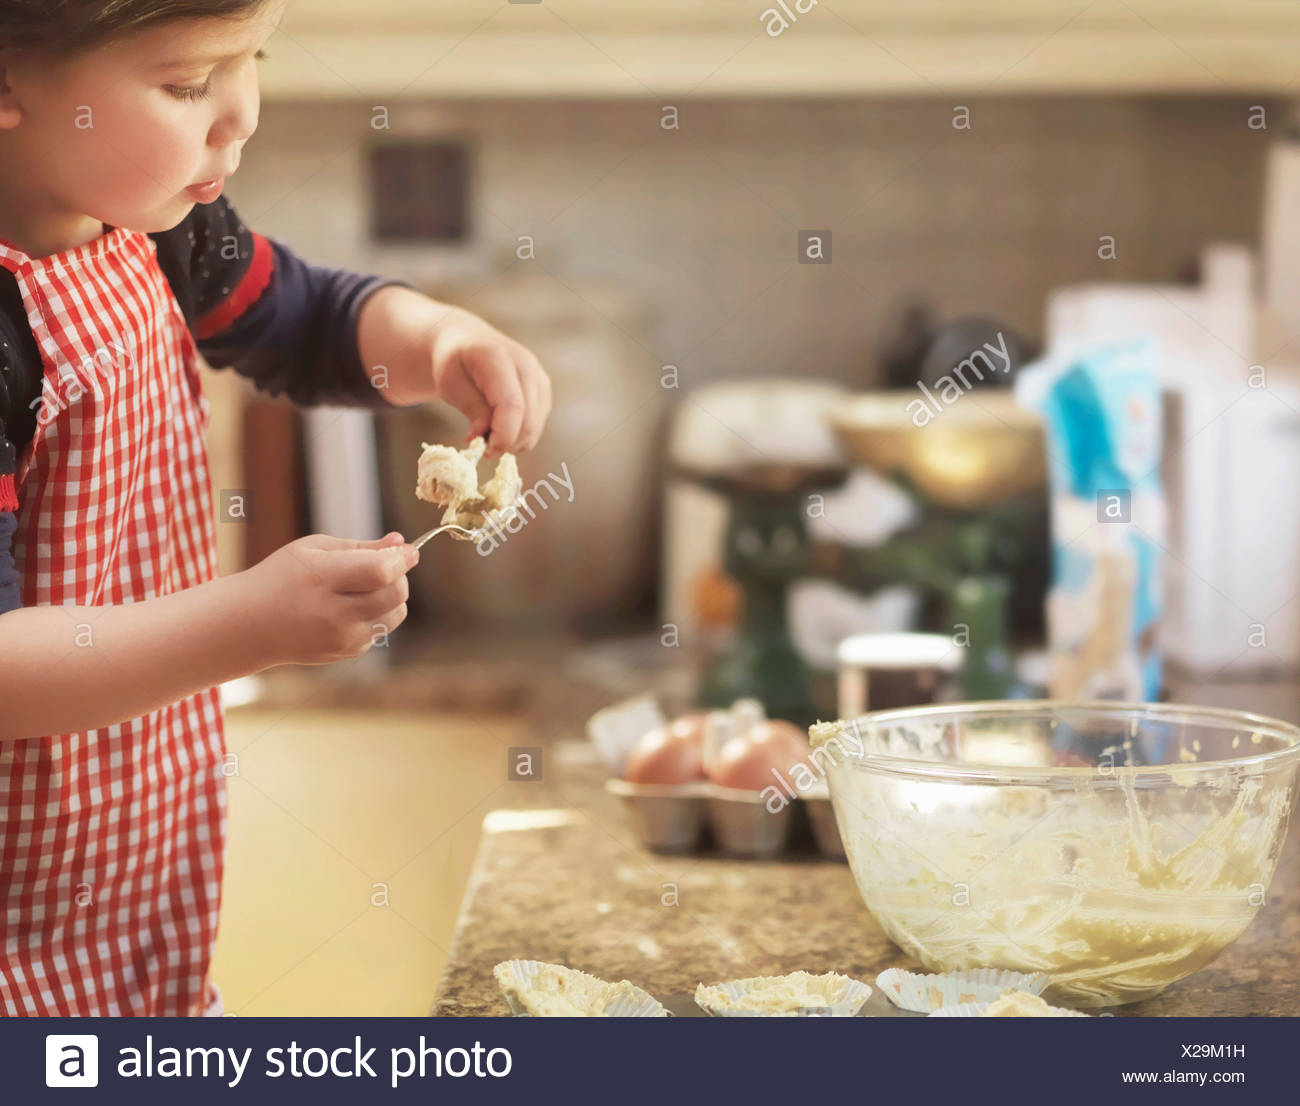 Child holding spoon with cake mix Stock Photo